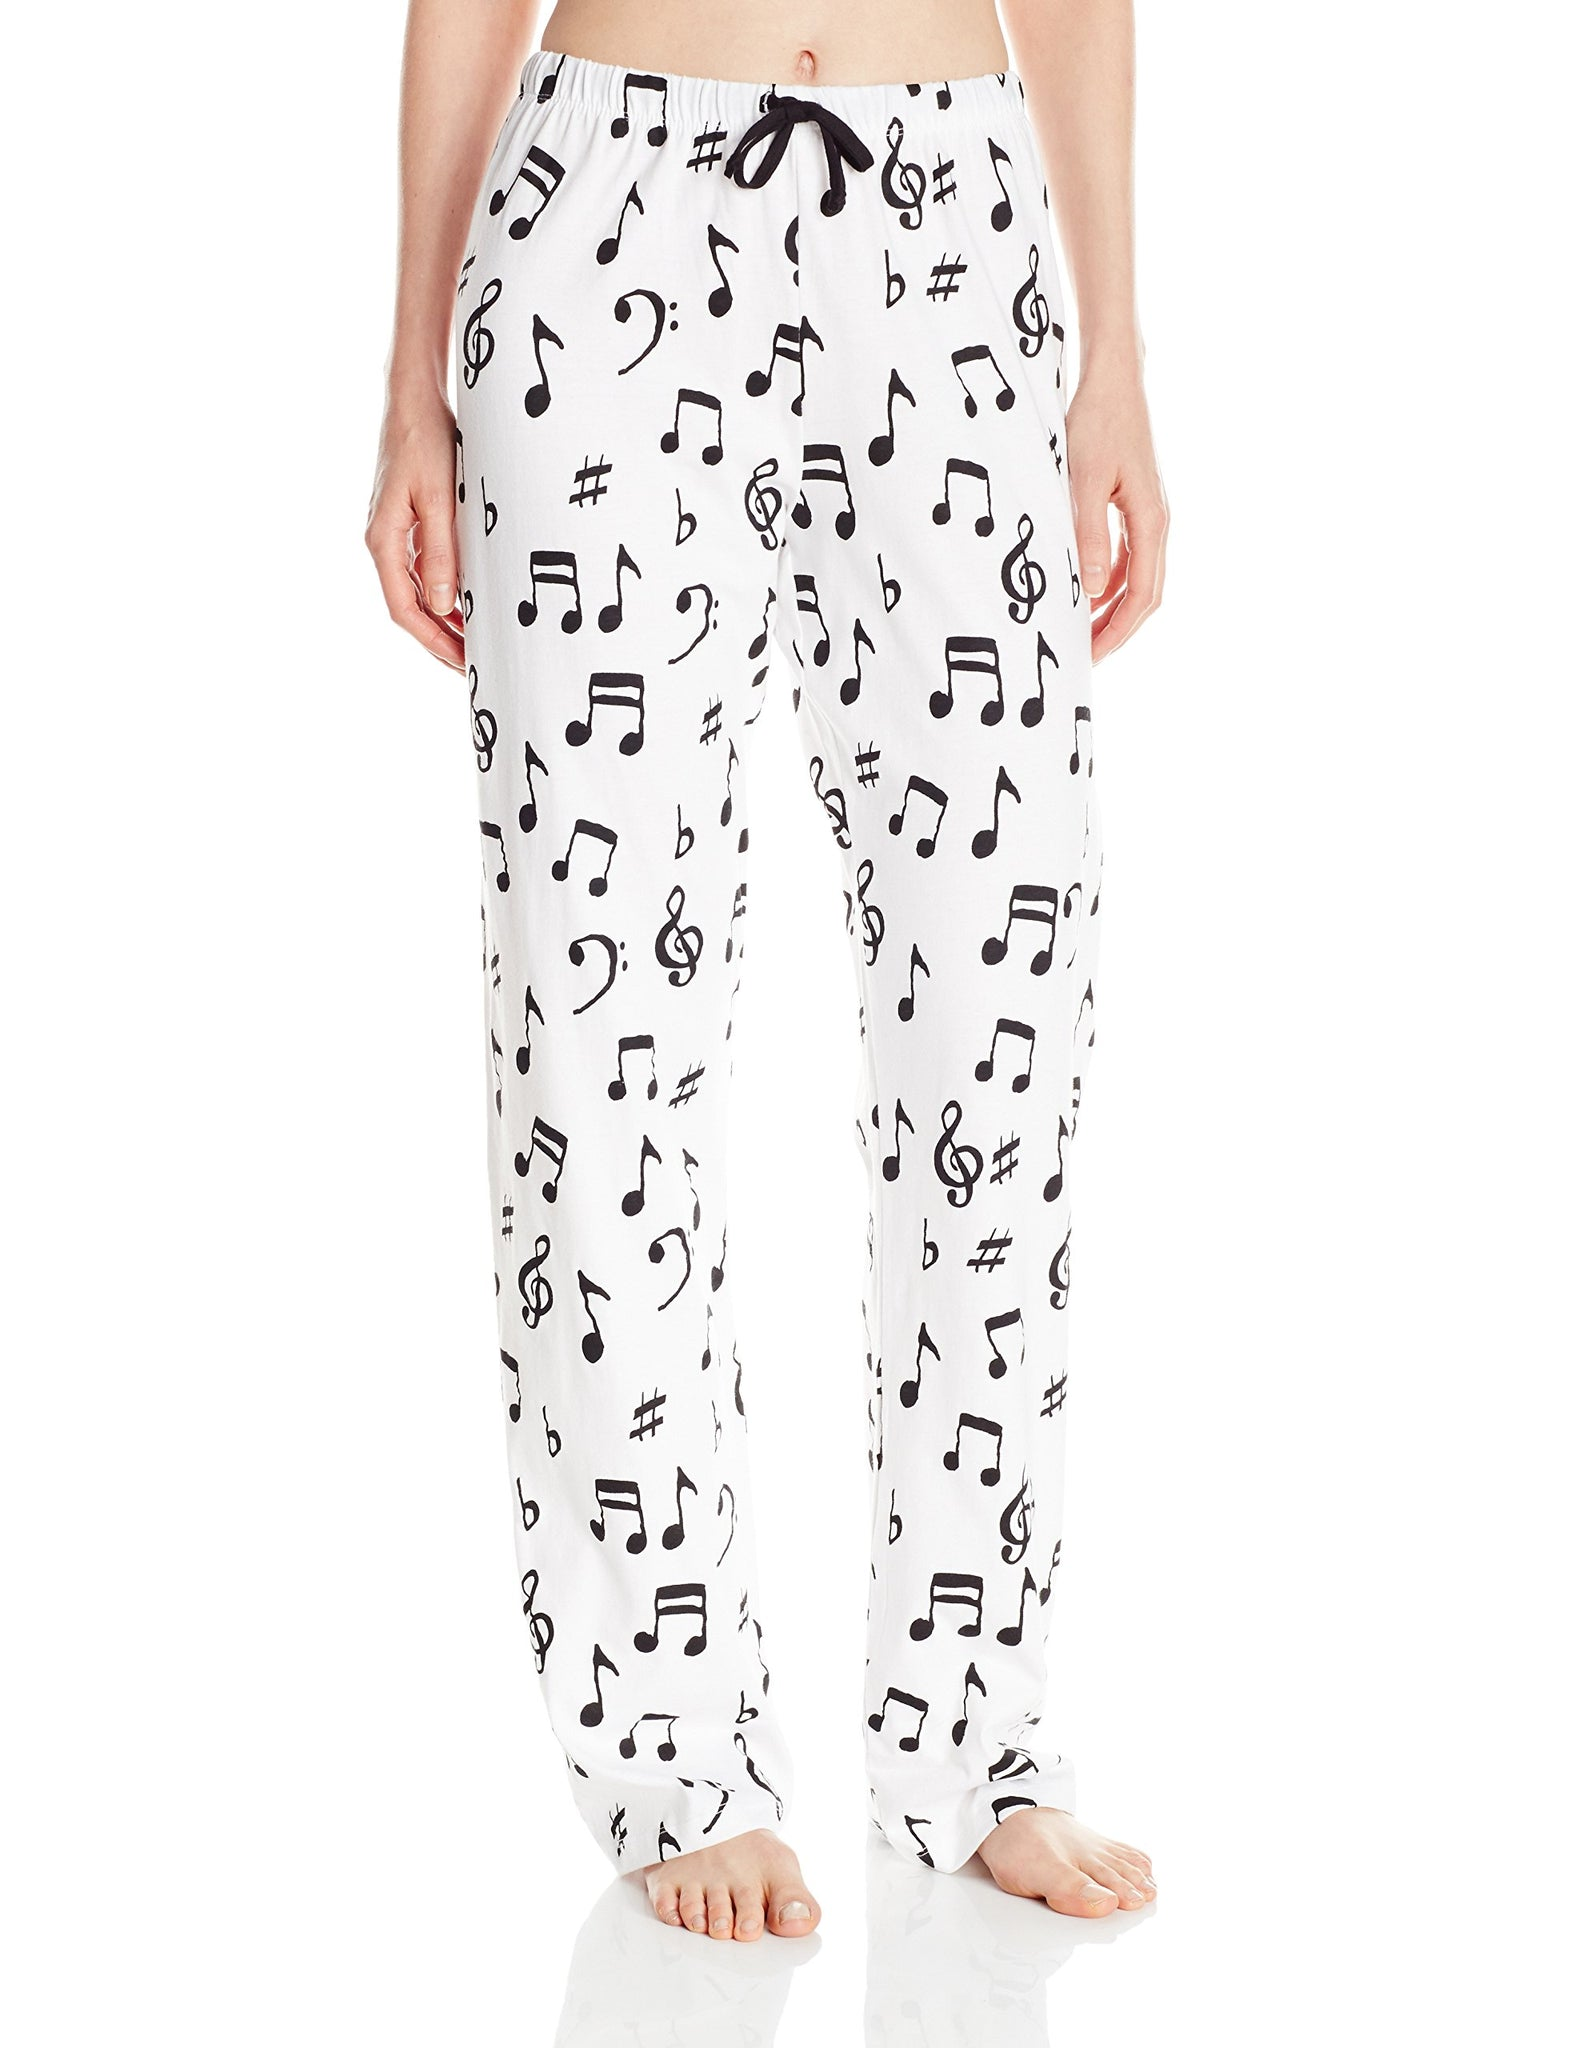 little BLUE HOUSE by Hatley Women's LBH Pajama Pants - Music Notes,Music Notes, Large